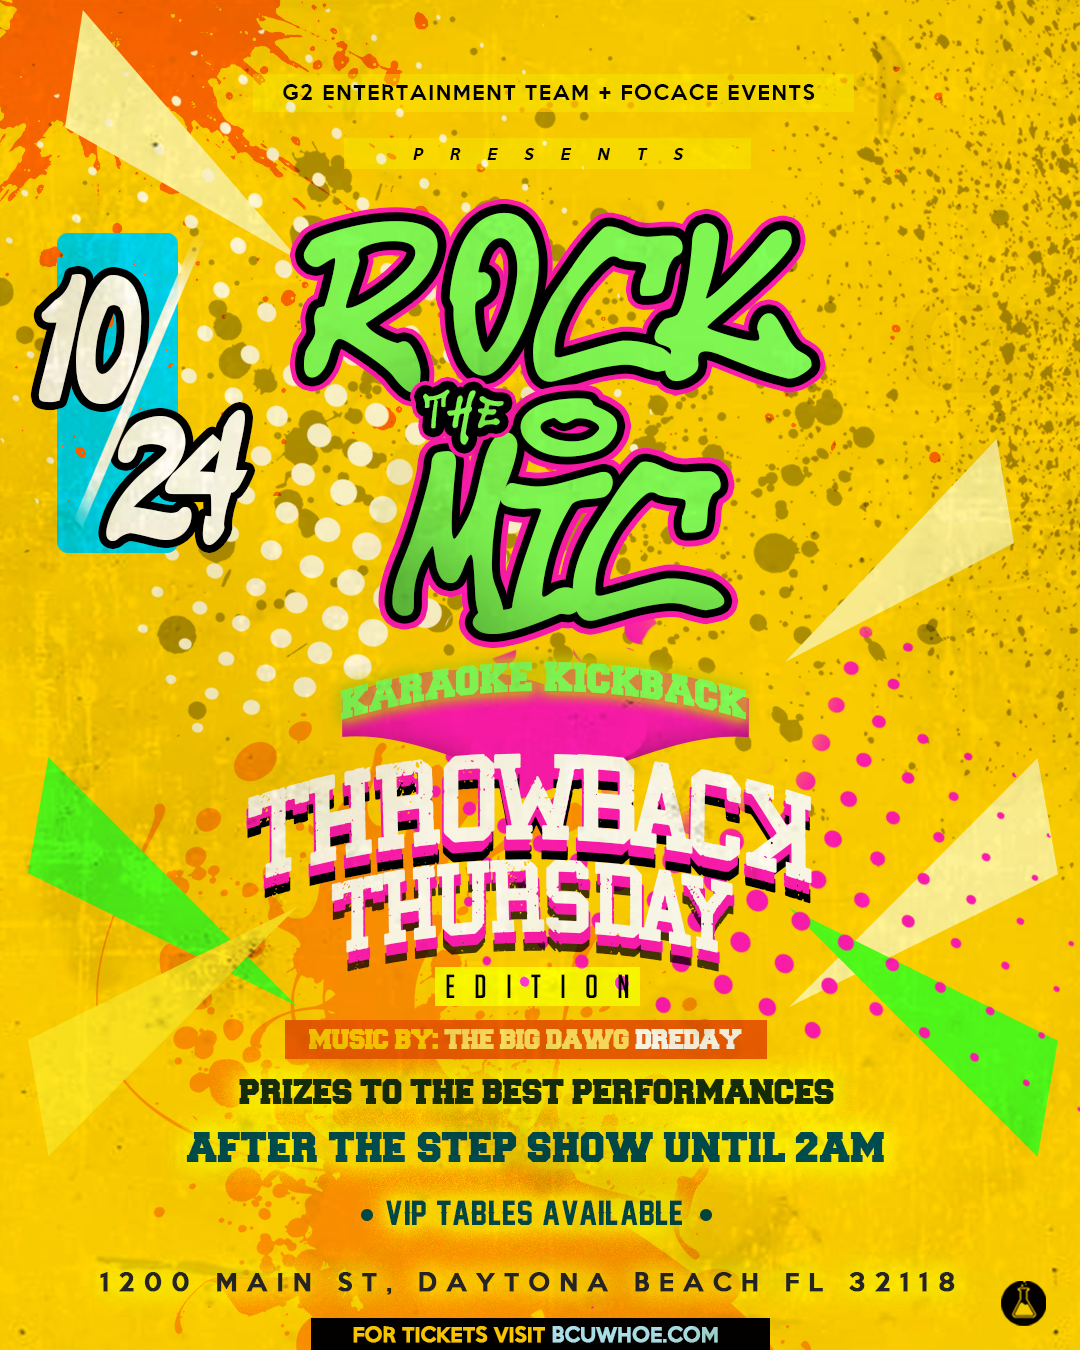 https://www.eventbrite.com/e/rock-the-mic-karaoke-kickback-throwback-thursday-edition-18-tickets-46946398943